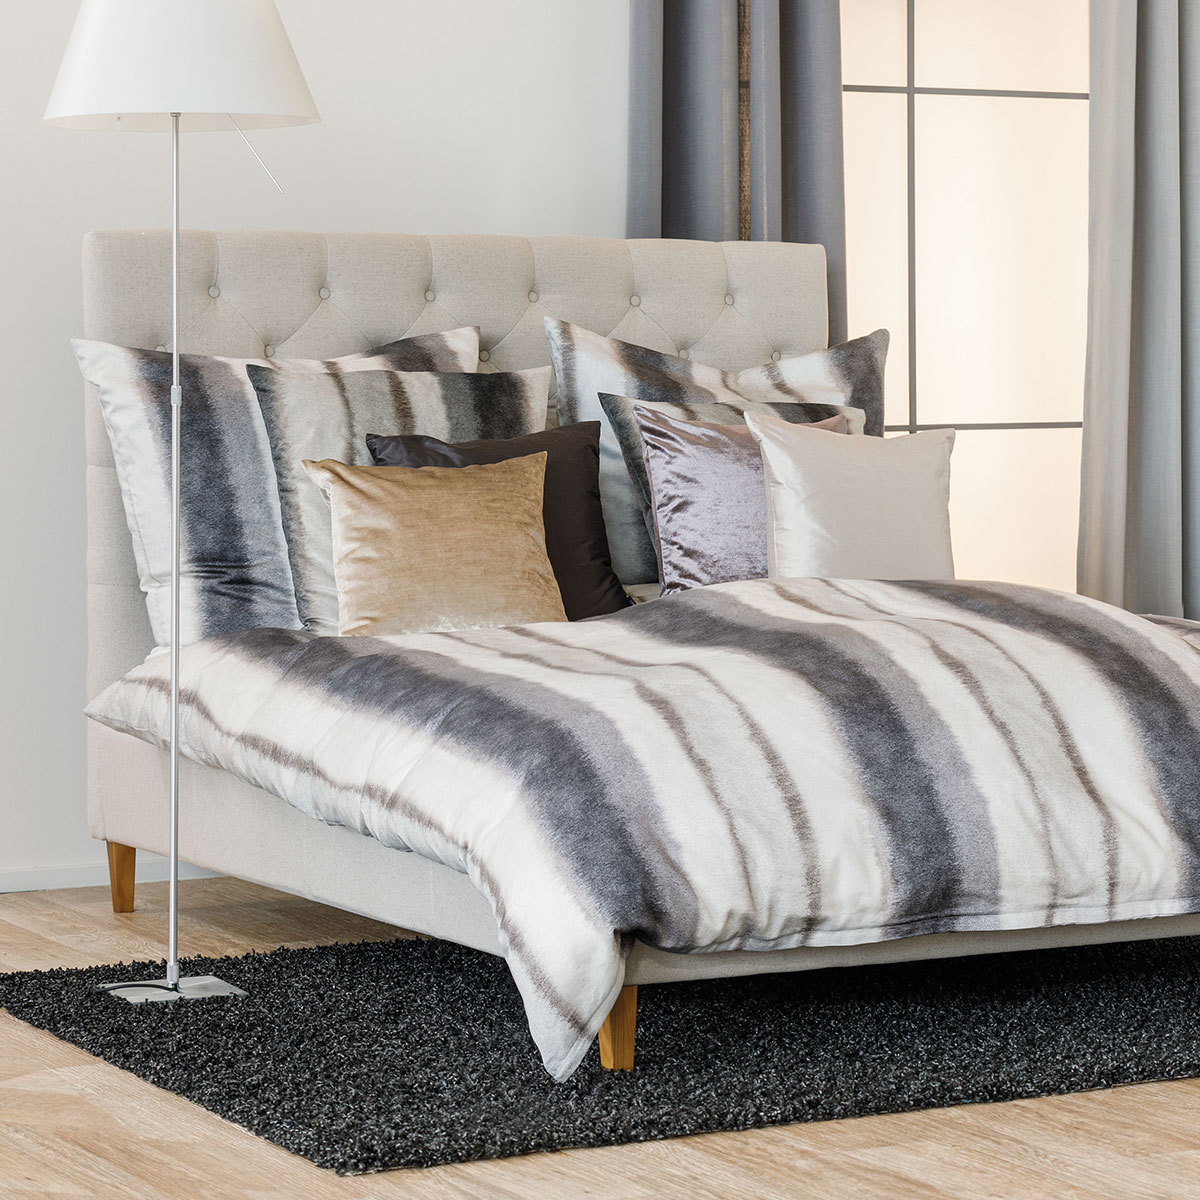 apelt mako satin bettw sche henry g nstig online kaufen bei bettwaren shop. Black Bedroom Furniture Sets. Home Design Ideas